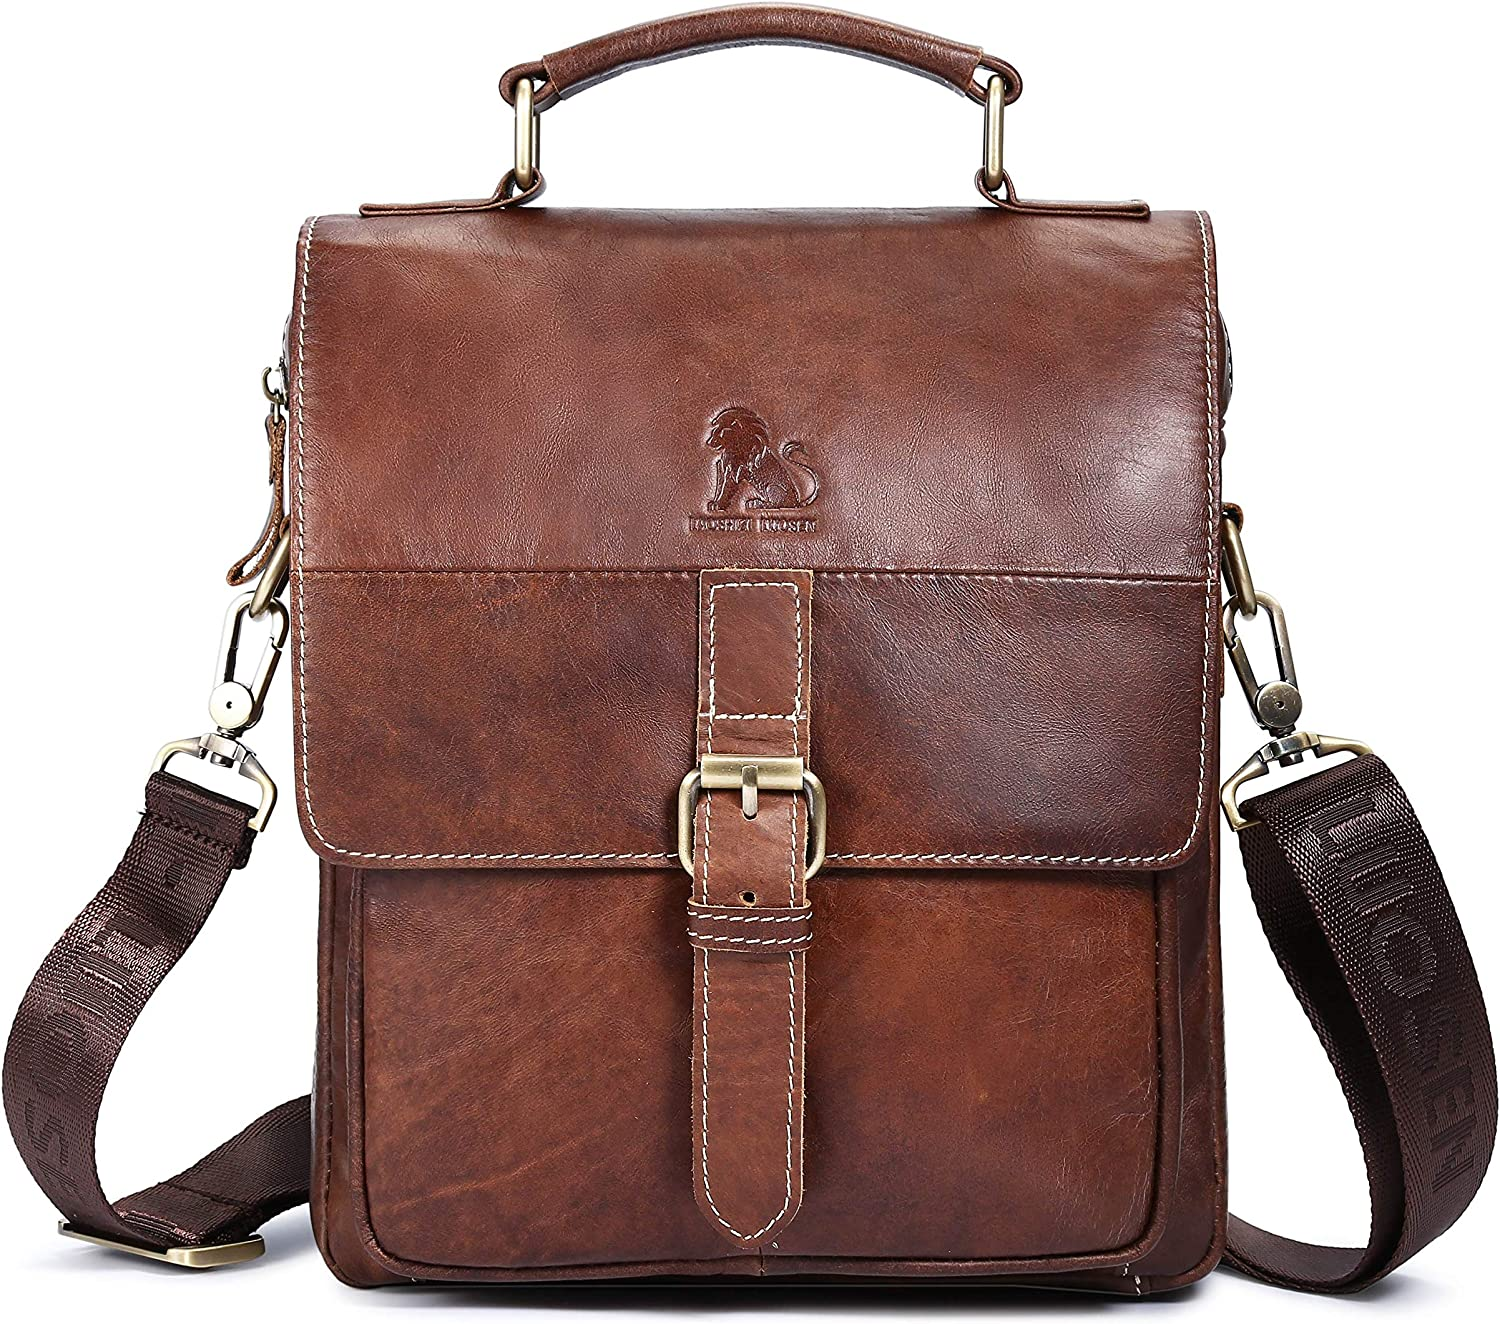 BAIGIO Genuine Leather Shoulder Bag for Men Spacious Messenger Bag Cross Body Casual Daypack Small Briefcase for Hiking Travel Everyday Use Brown